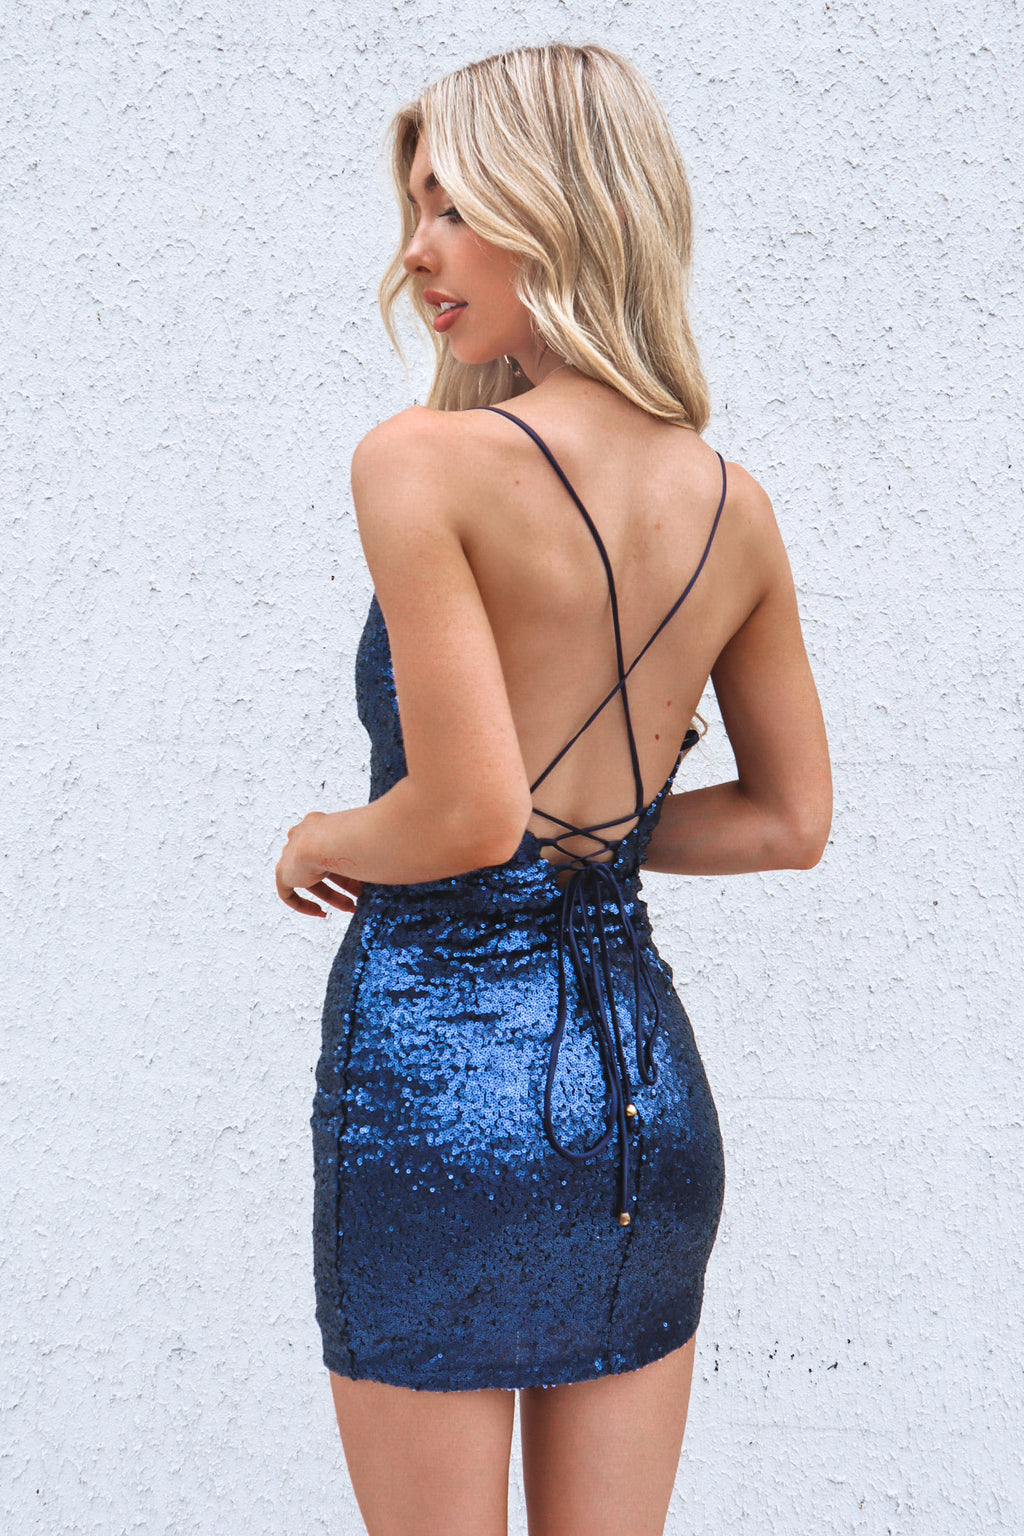 Ambrosia Sequin Dress - Navy